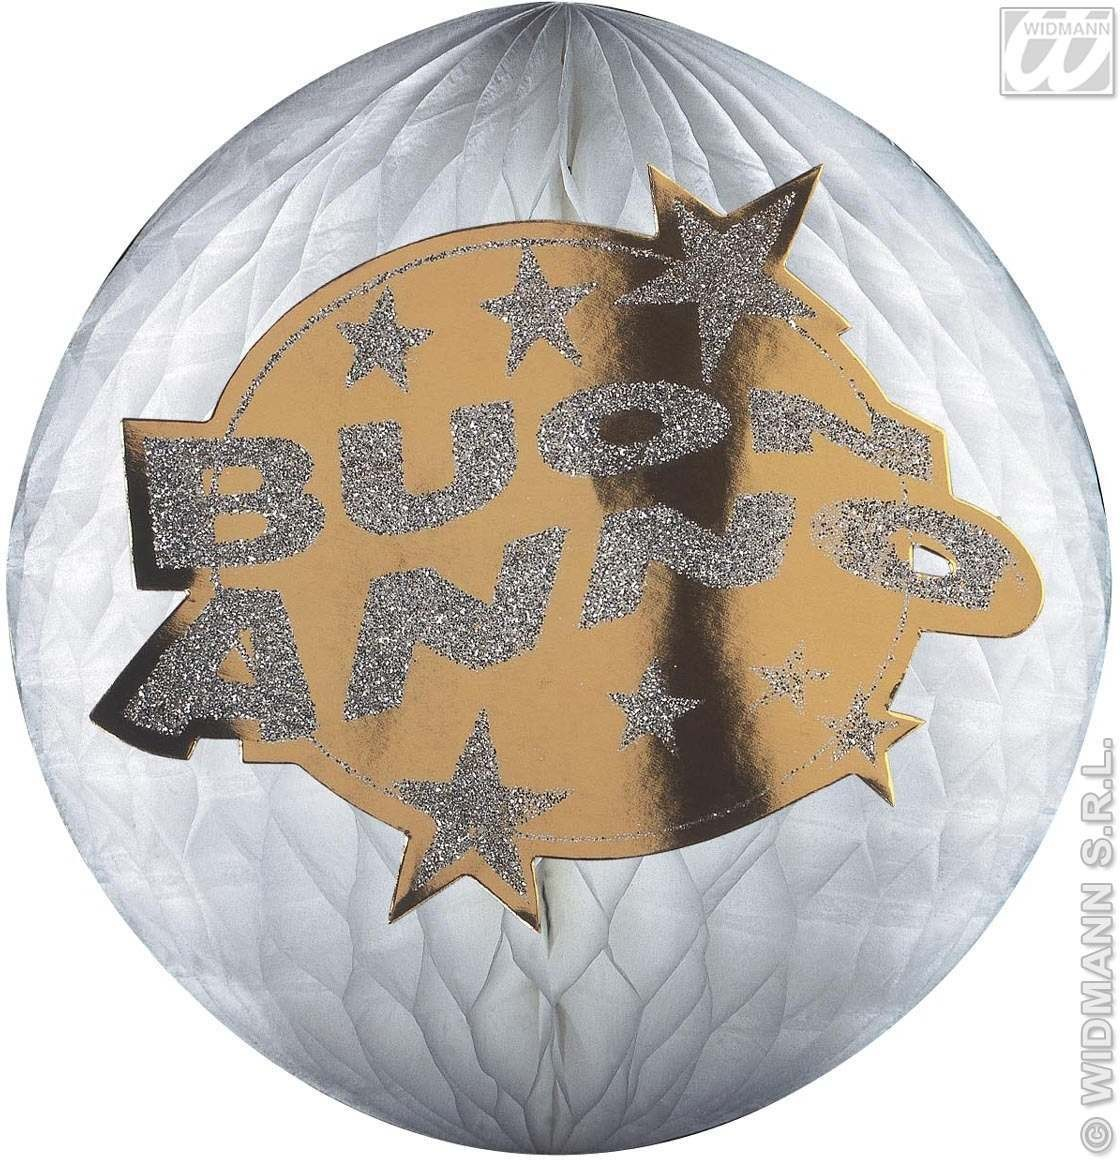 Hologr.Buon Anno Honeycomb Paperballs-25Cm Fancy Dress